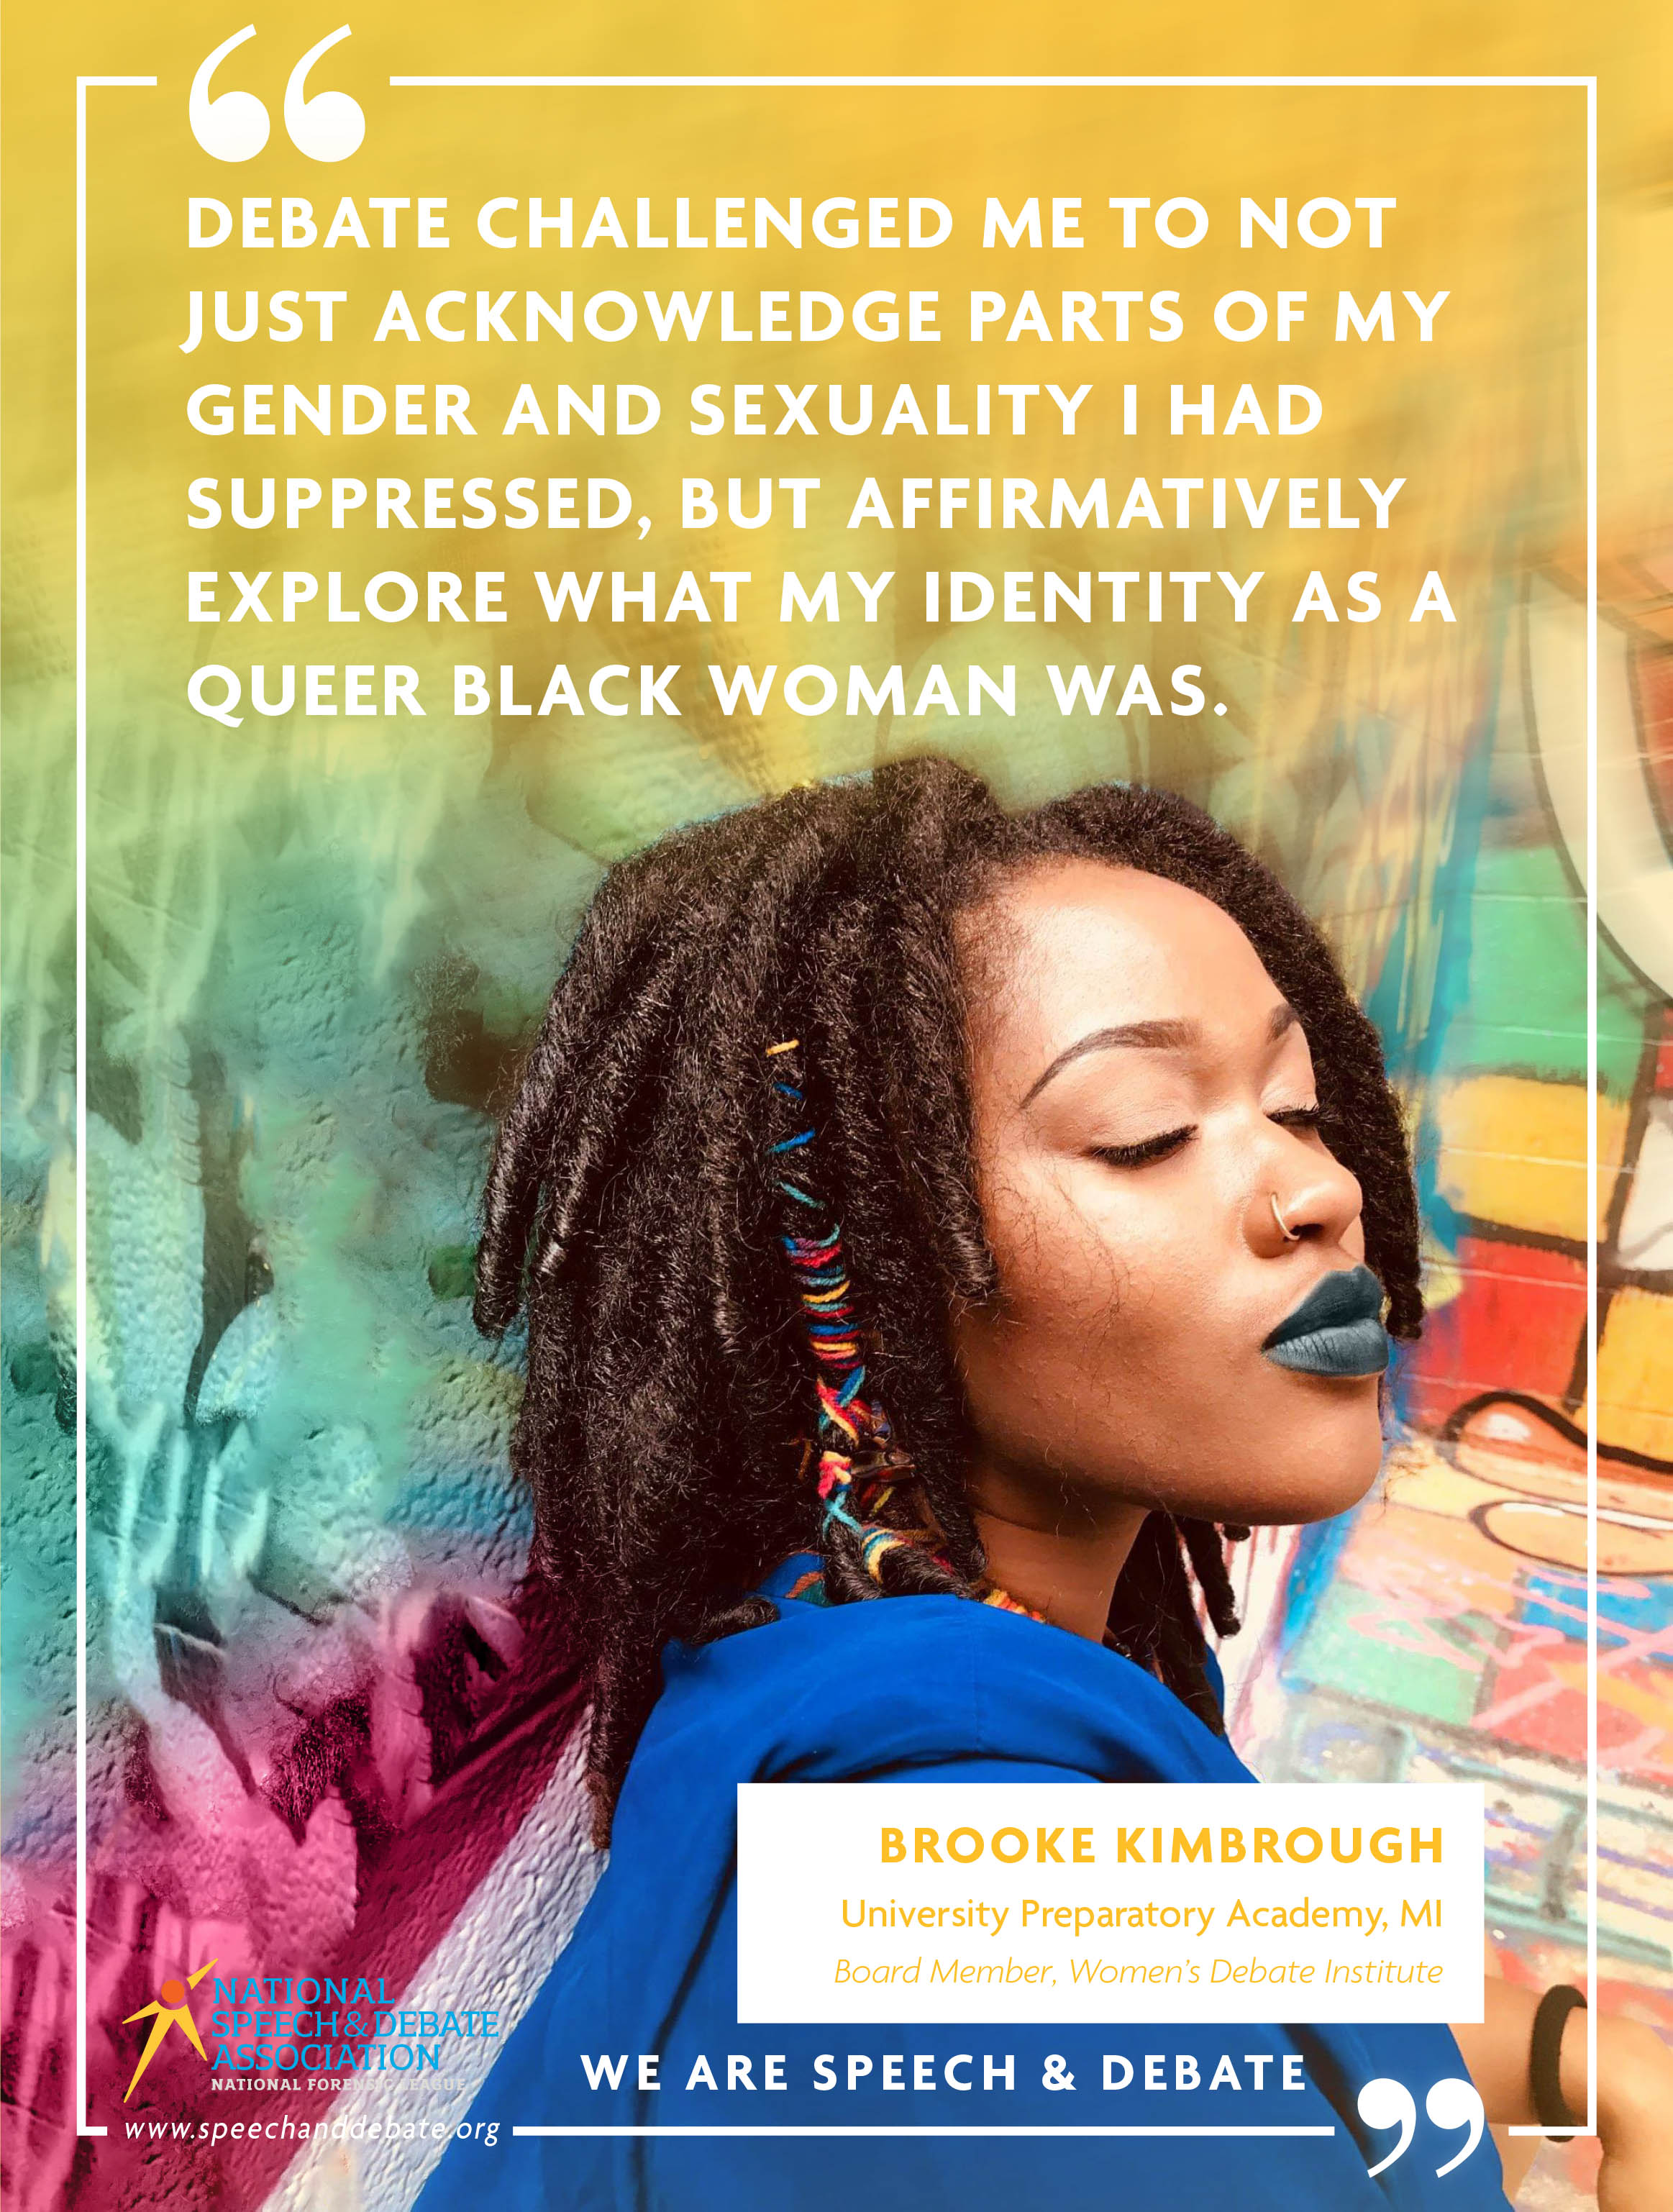 """DEBATE CHALLENGED ME TO NOT JUST ACKNOWLEDGE PARTS OF MY GENDER AND SEXUALITY I HAD SUPPRESSED, BUT AFFIRMATIVELY EXPLORE WHAT MY IDENTITY AS A QUEER BLACK WOMAN WAS."" - Brooke Kimbrough"